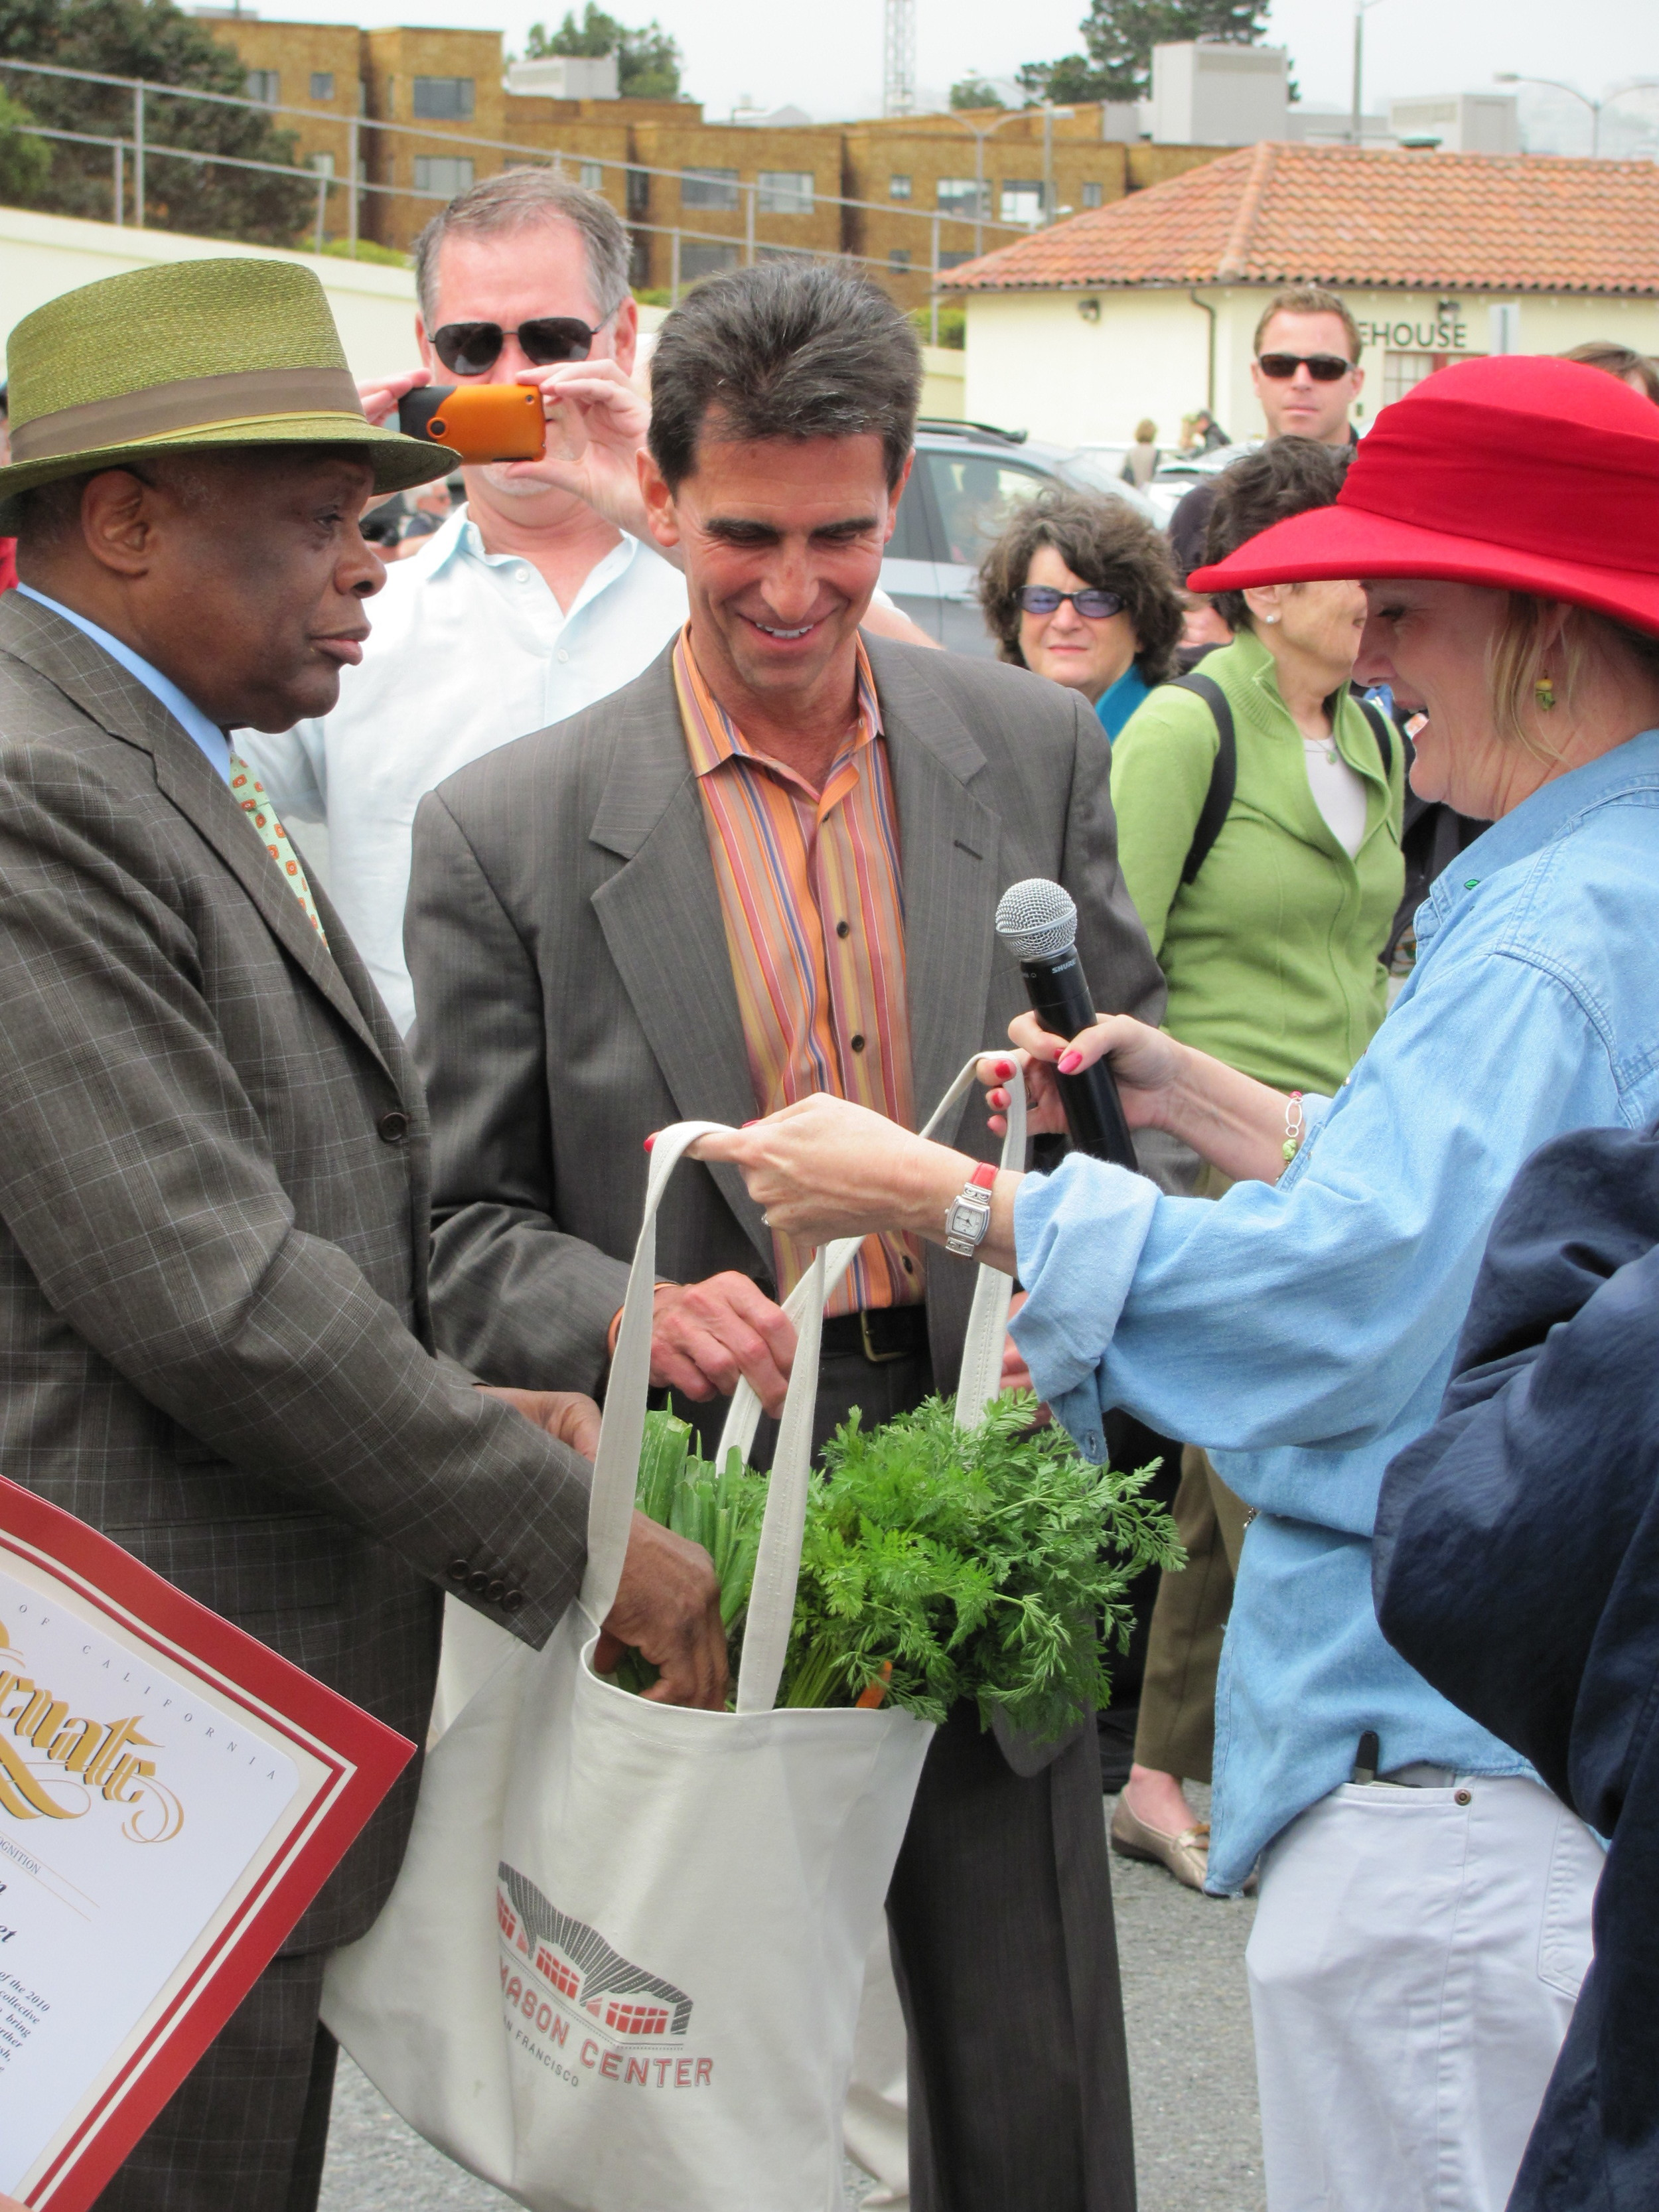 Fort Mason Center Farmers' Market had a Star Studded Opening